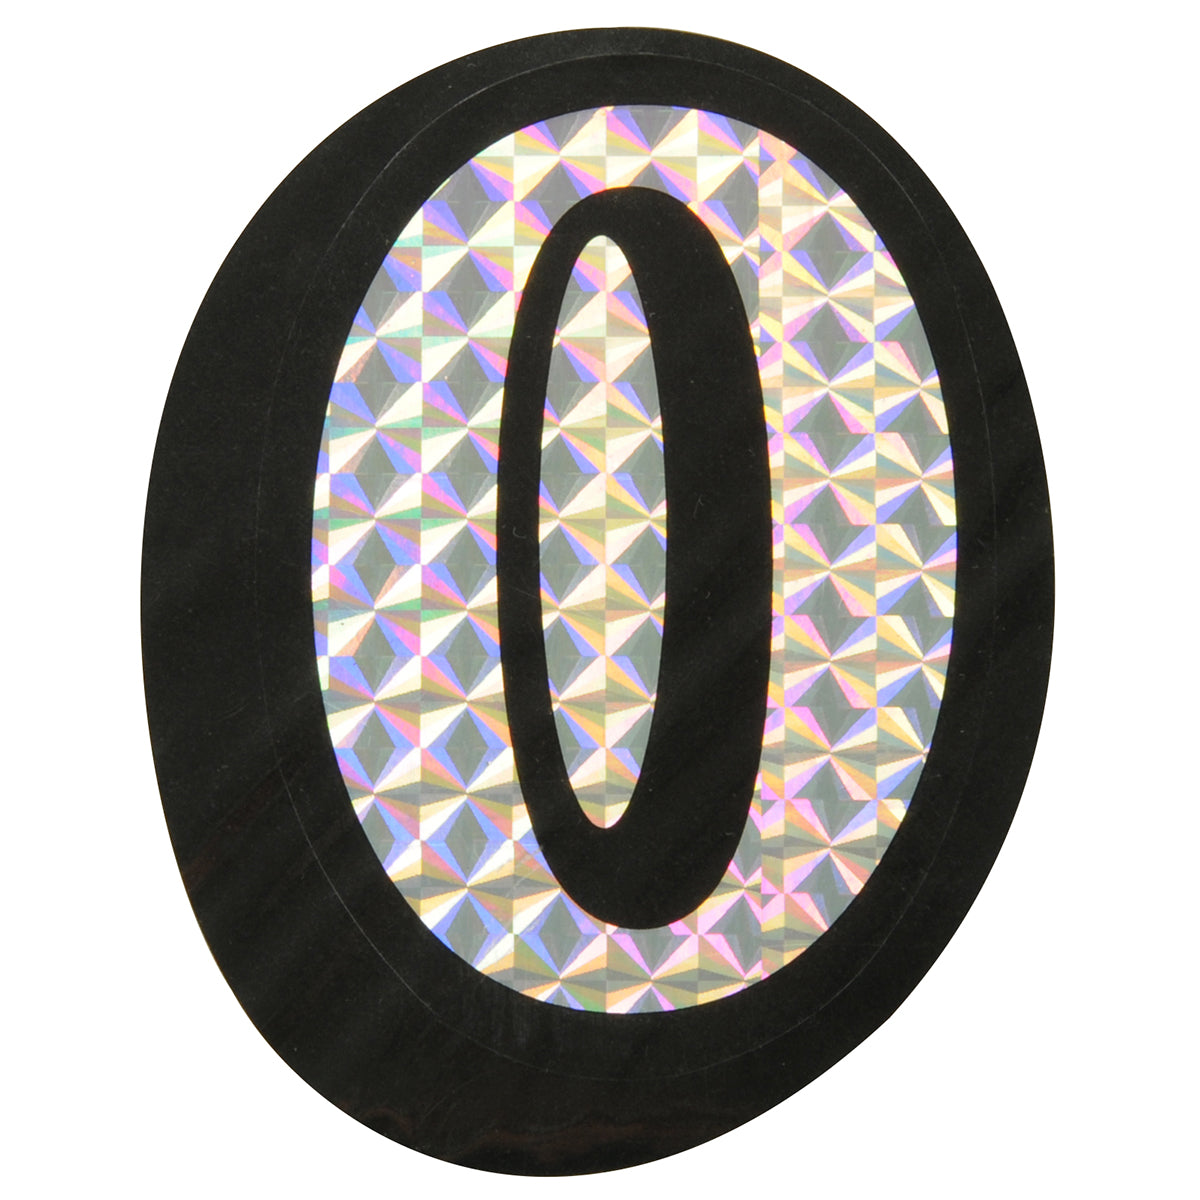 """0/O"" Prism Style Adhesive Number/Letter"